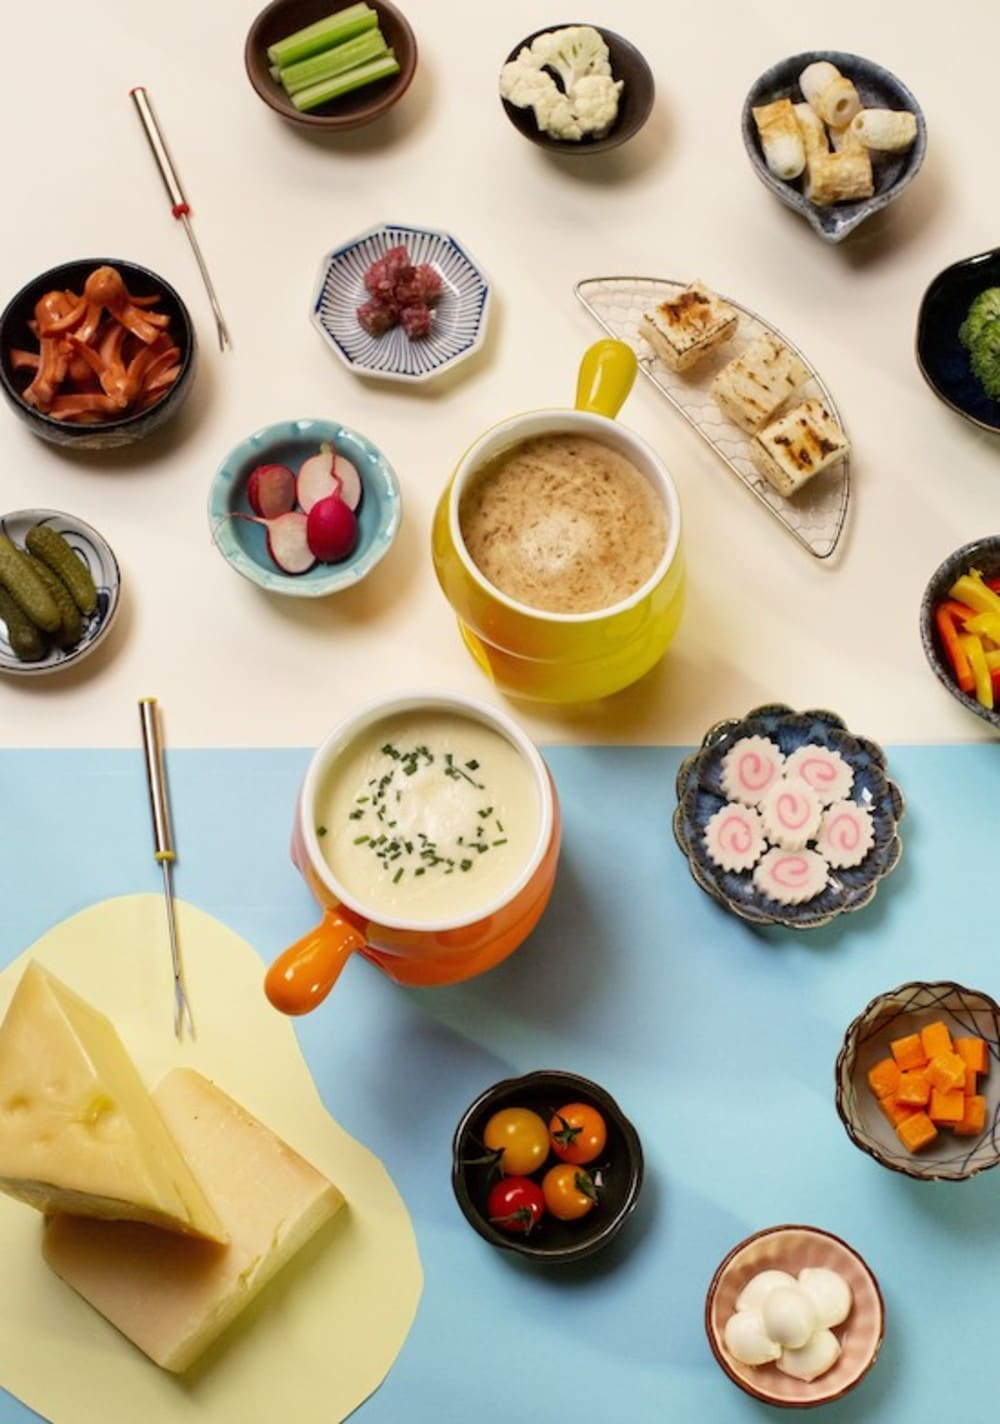 Japanese cheese fondue afternoon tea buffet at Eaton HK's The Astor